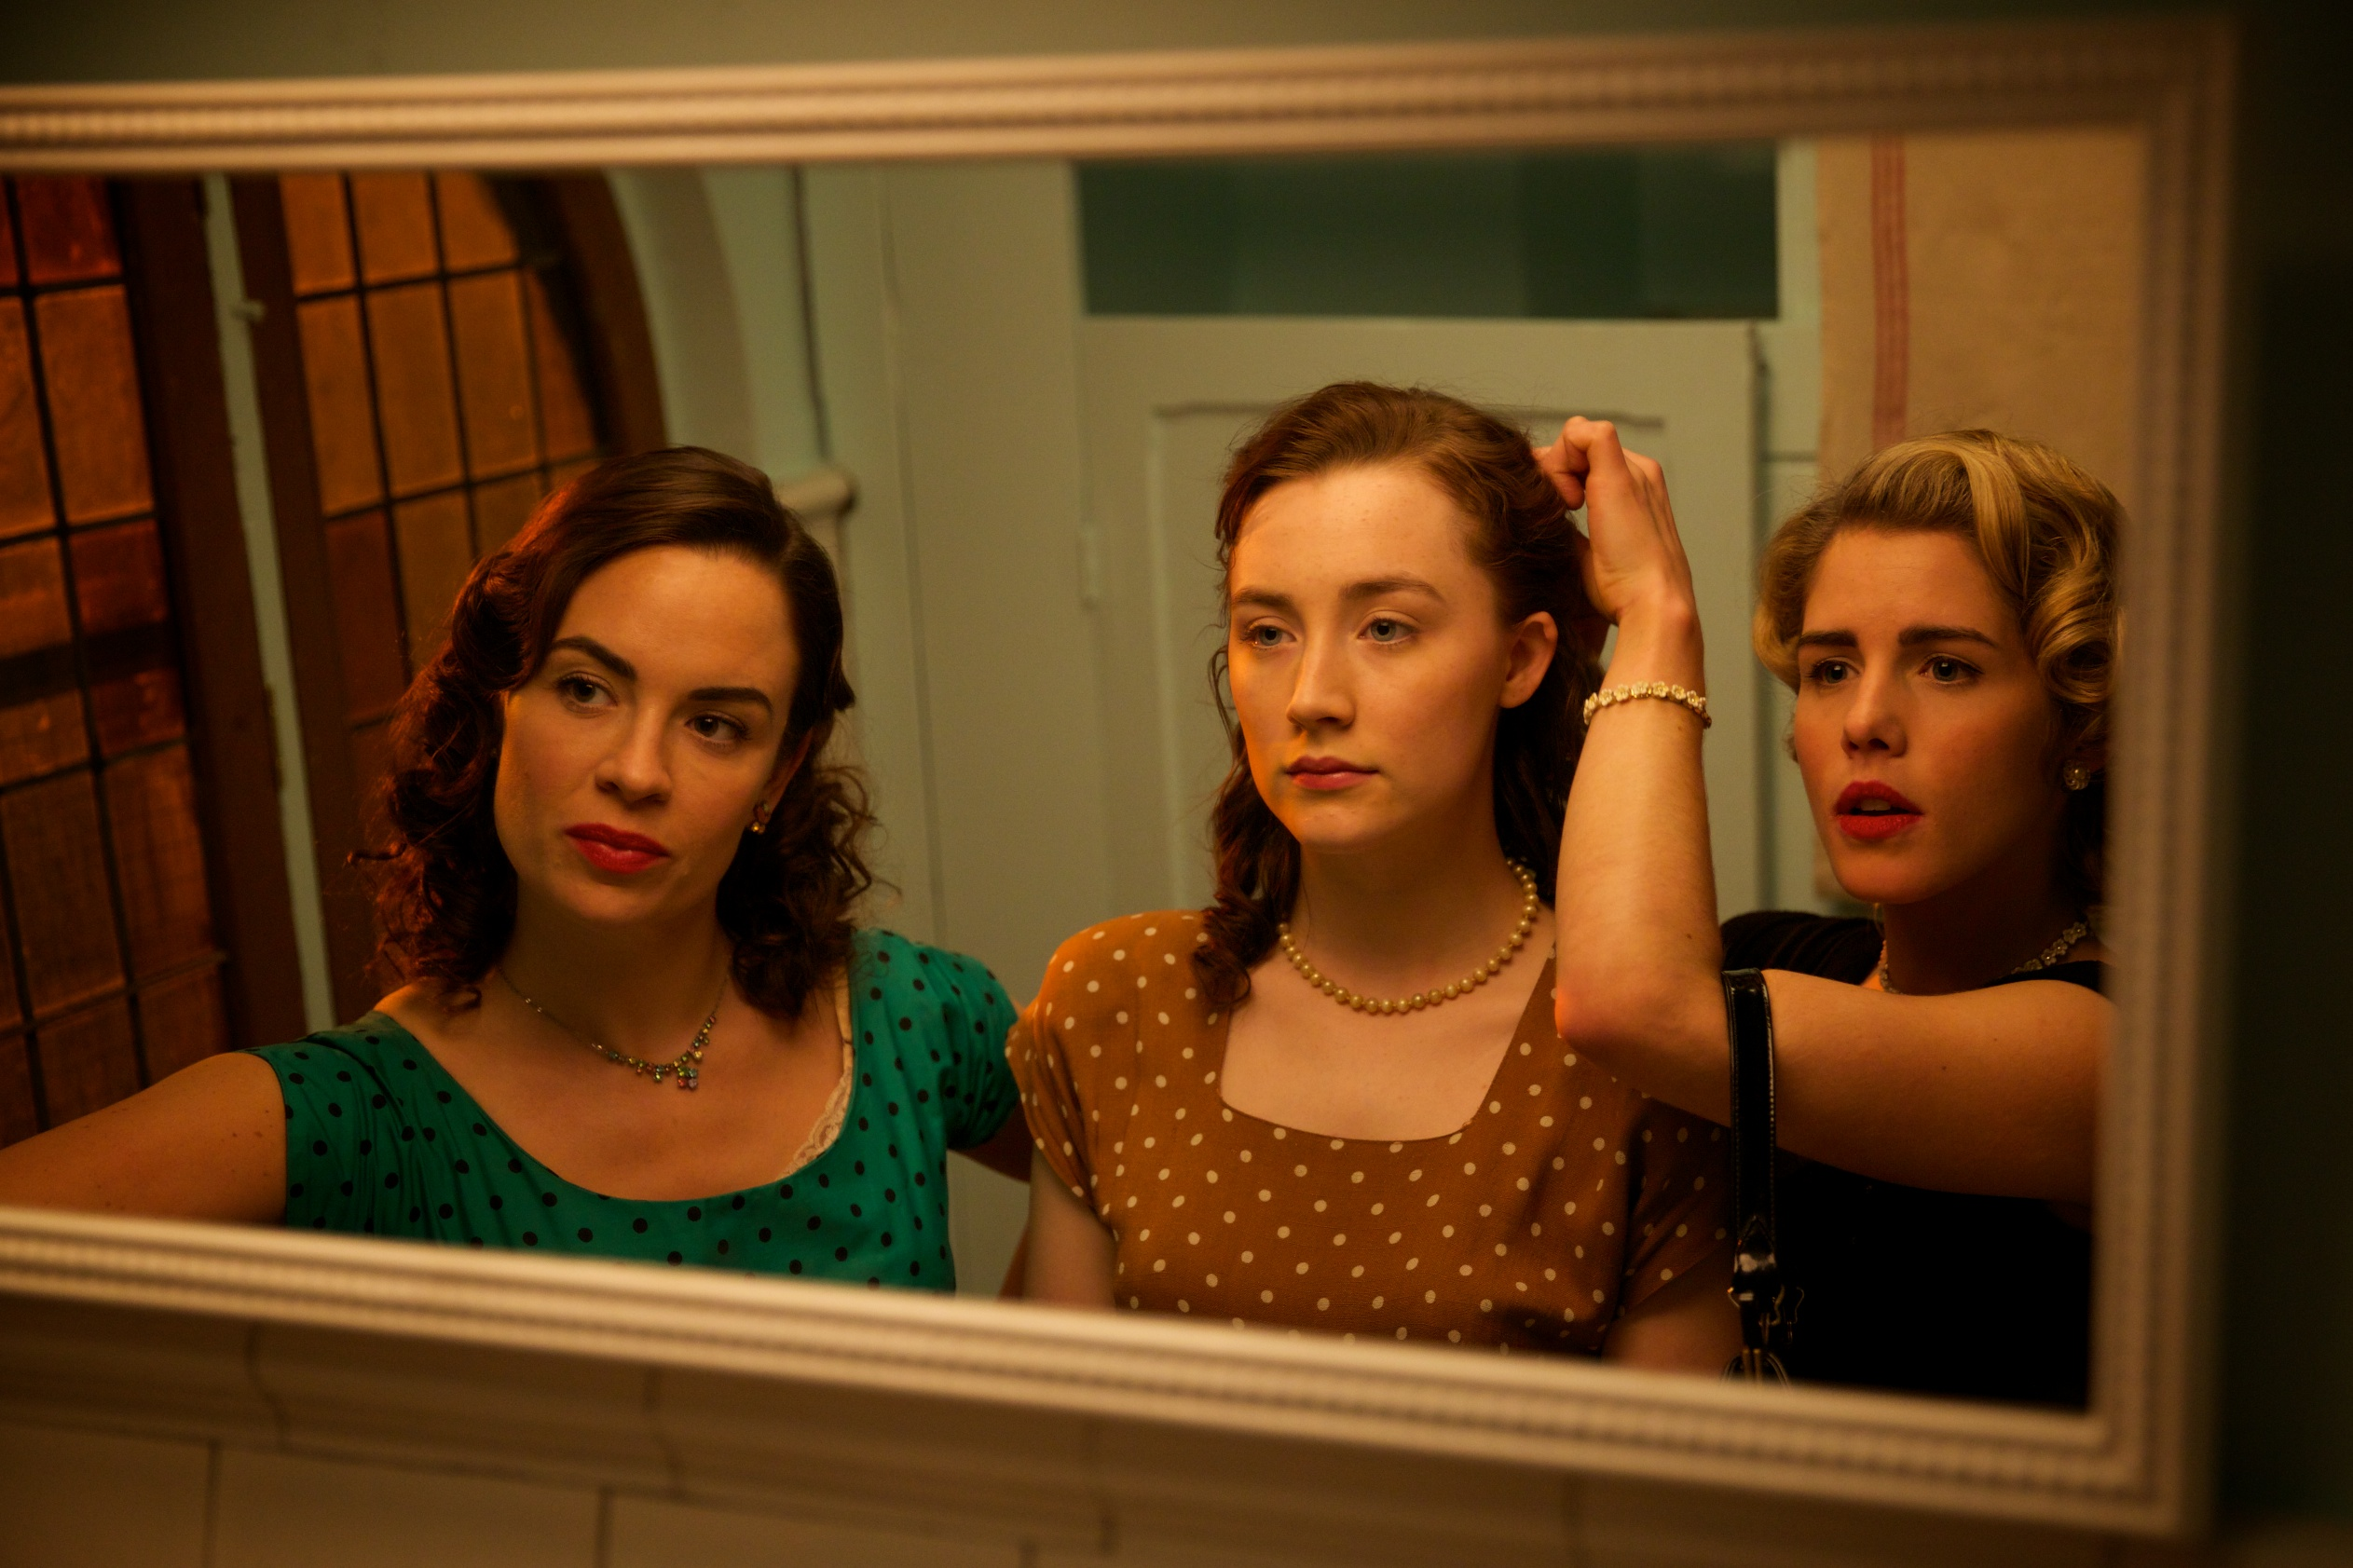 Brooklyn (2015) Stills